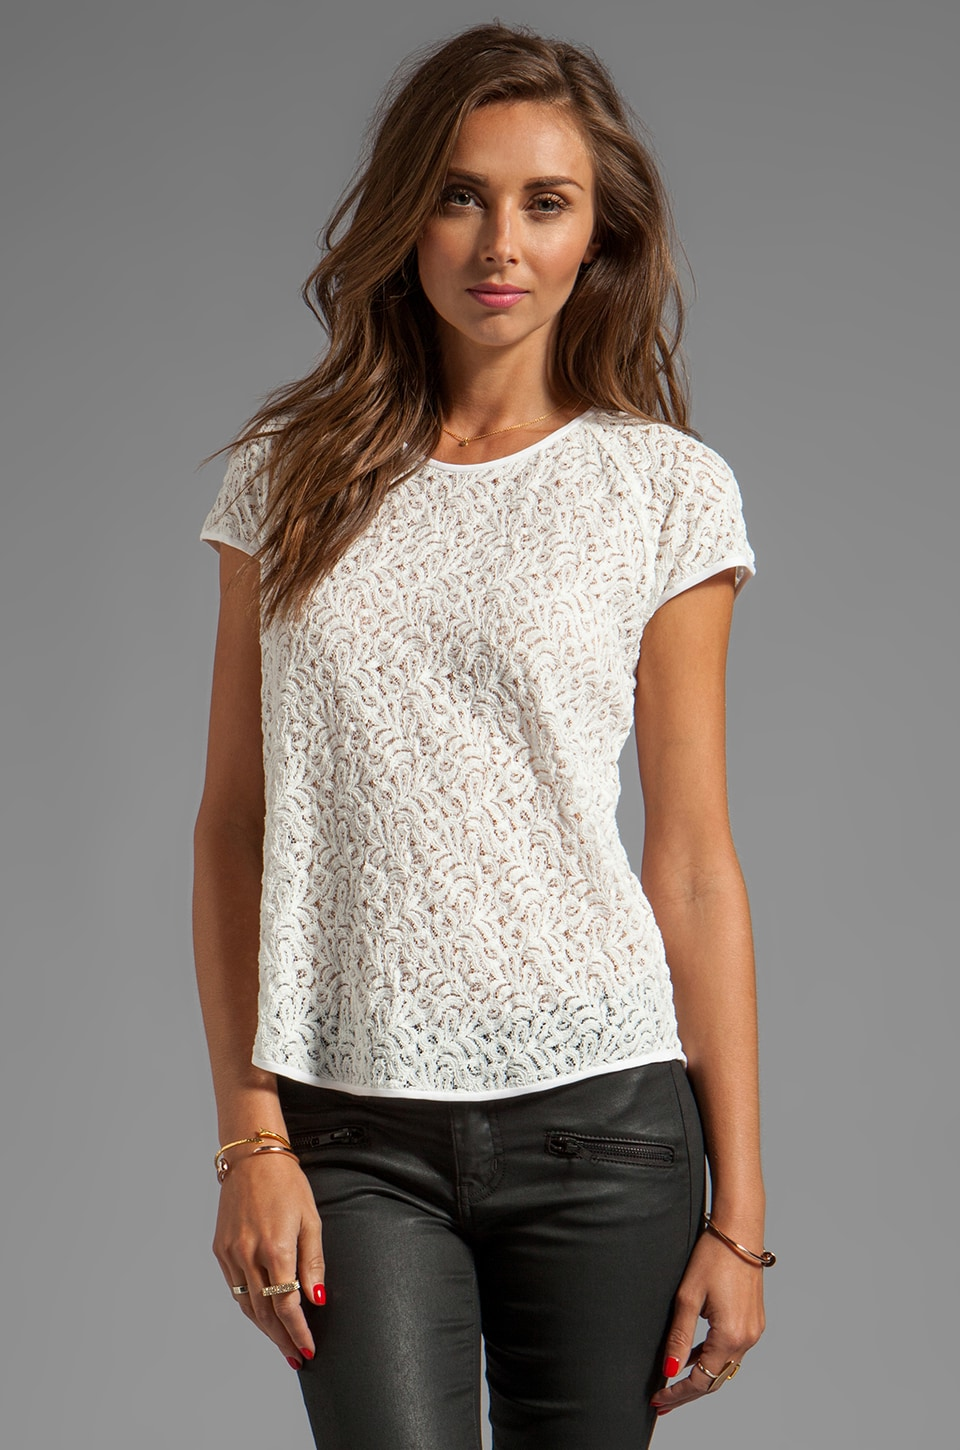 Diane von Furstenberg Liva Mini Leaf Lace Top in Lunar Moon